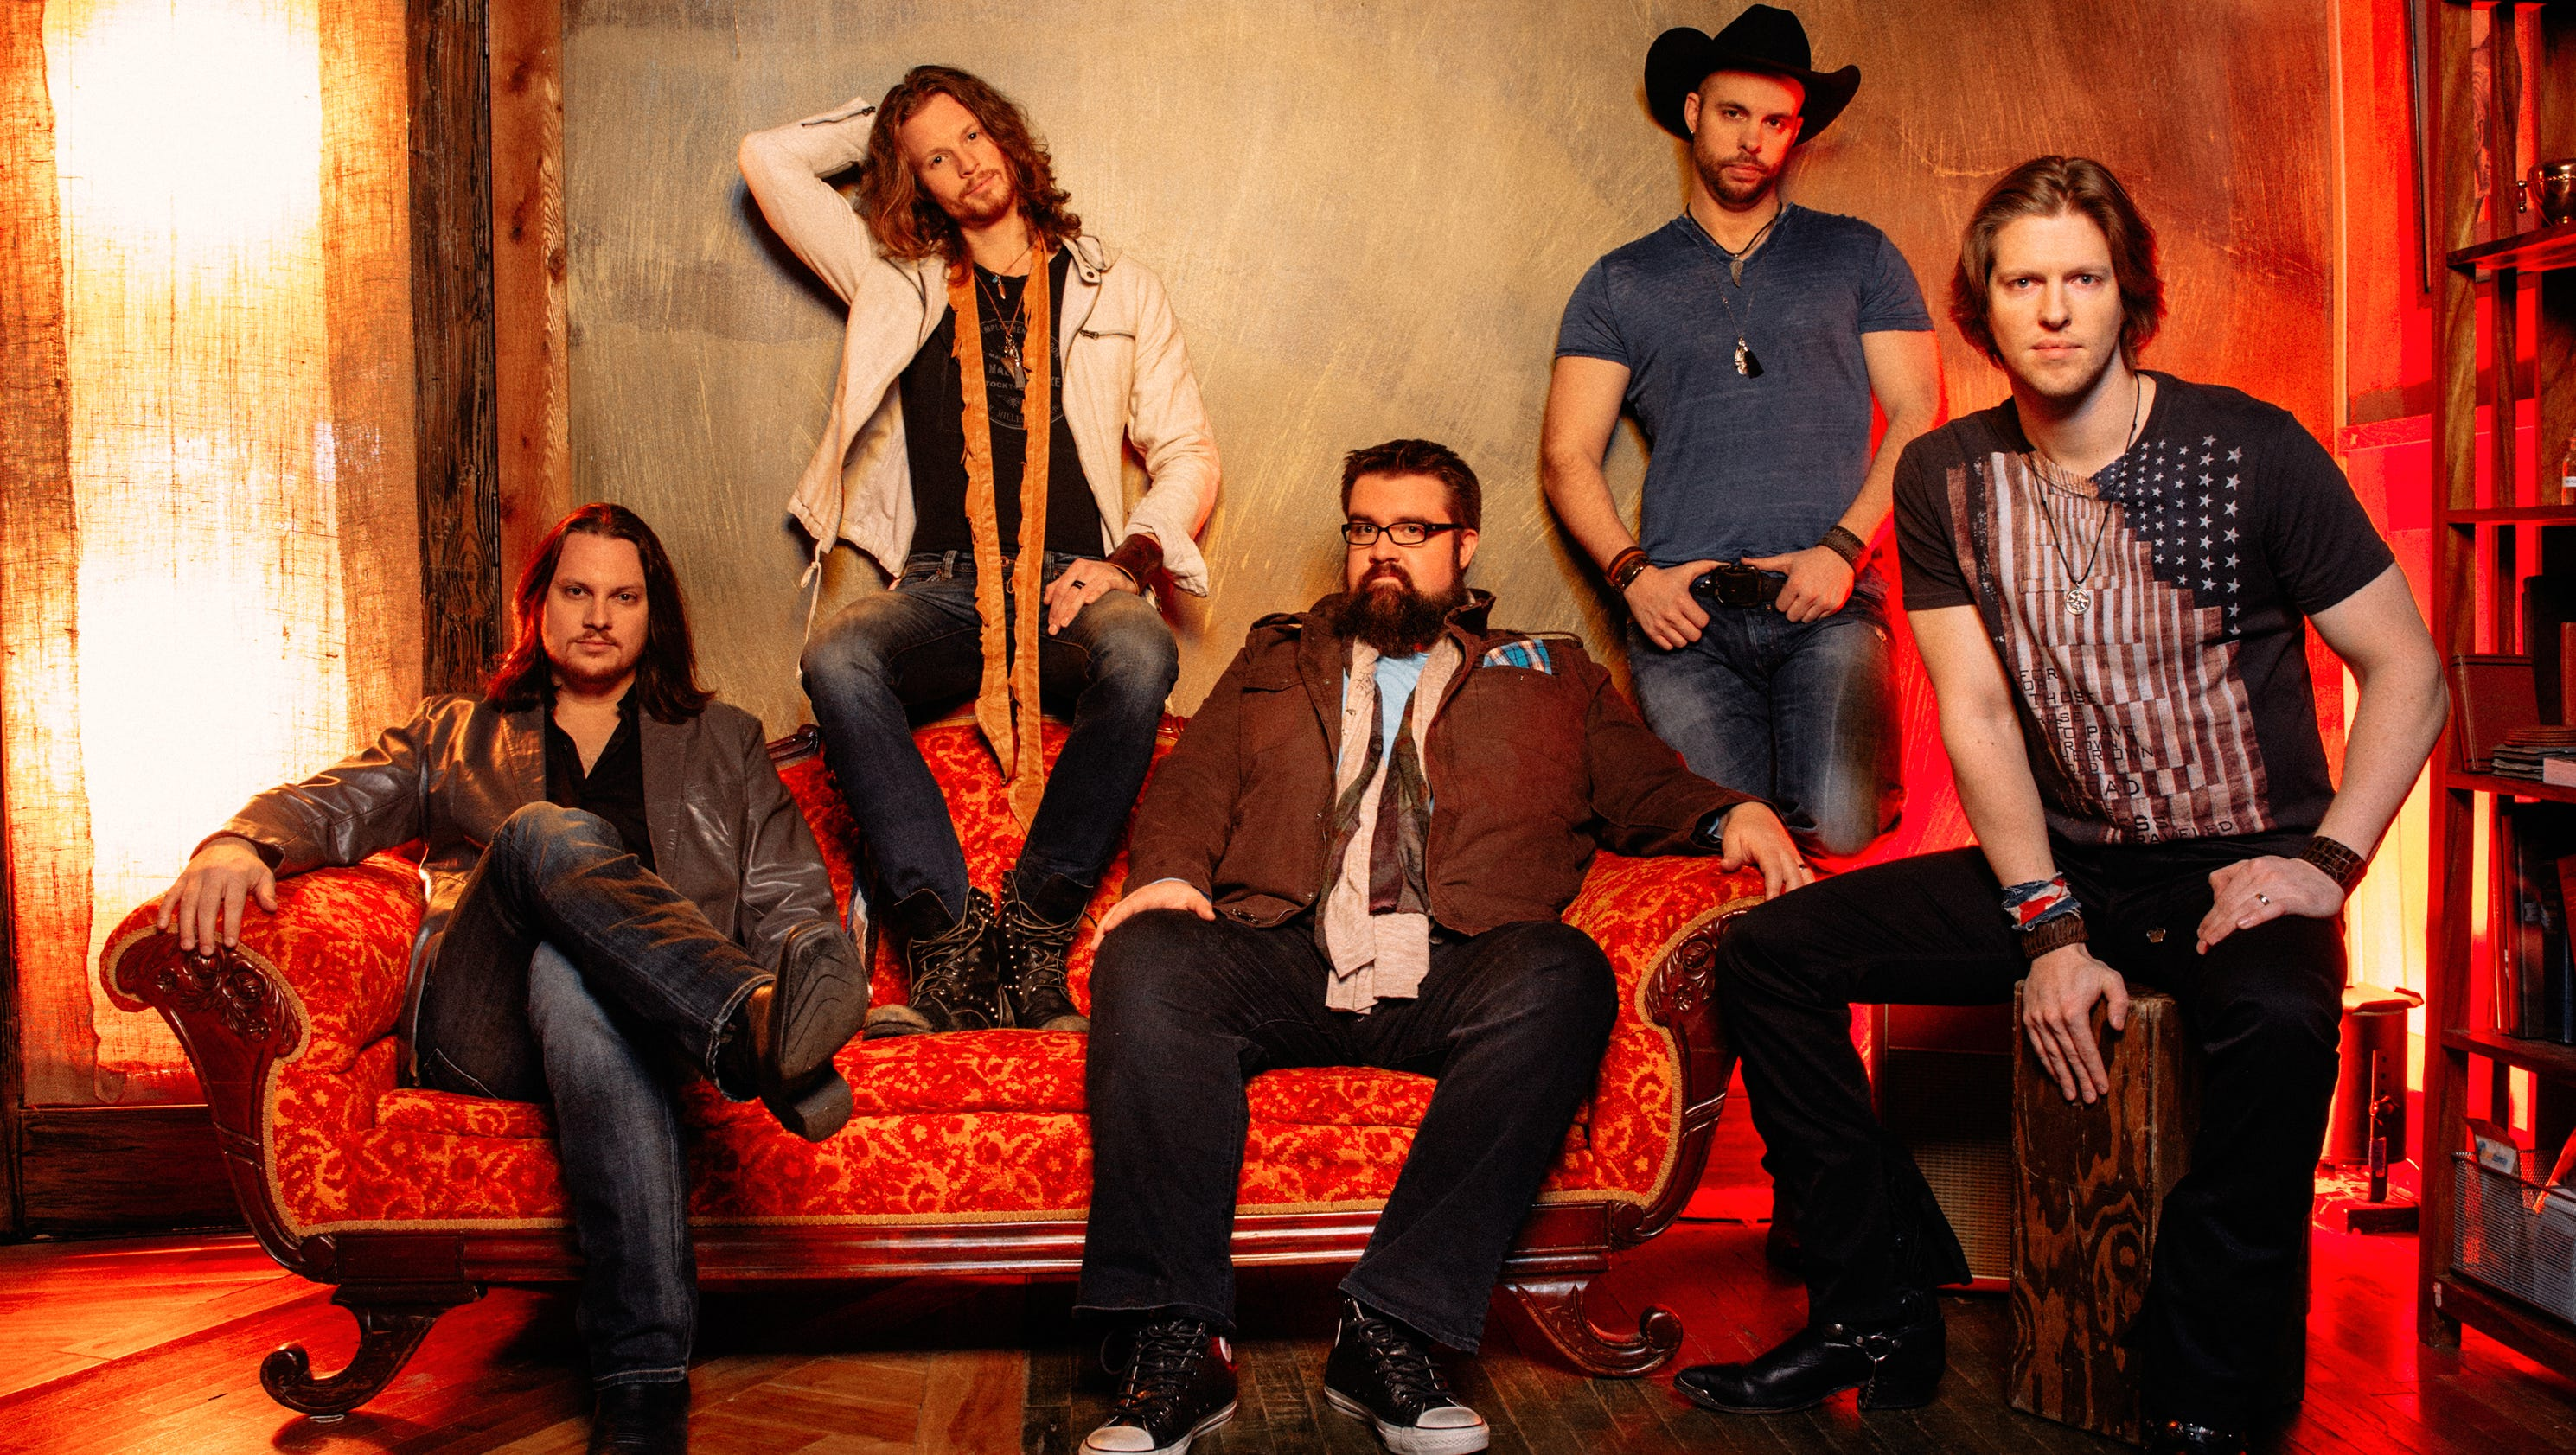 Home Free Band Tour Schedule